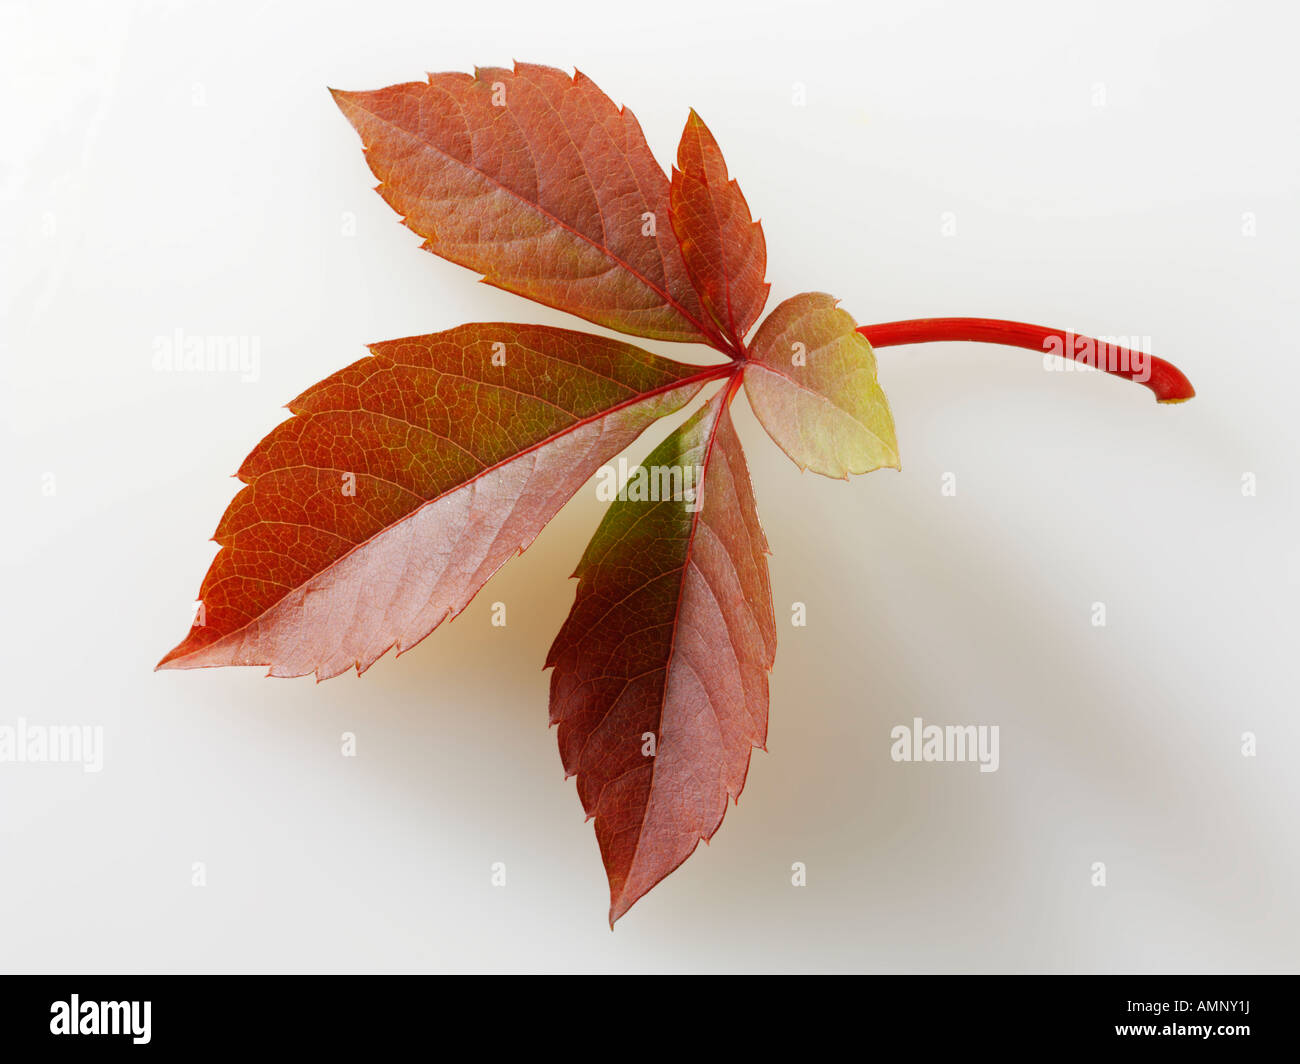 Autumn leaf. Single fall leaf against white. Natural colors and textures. - Stock Image